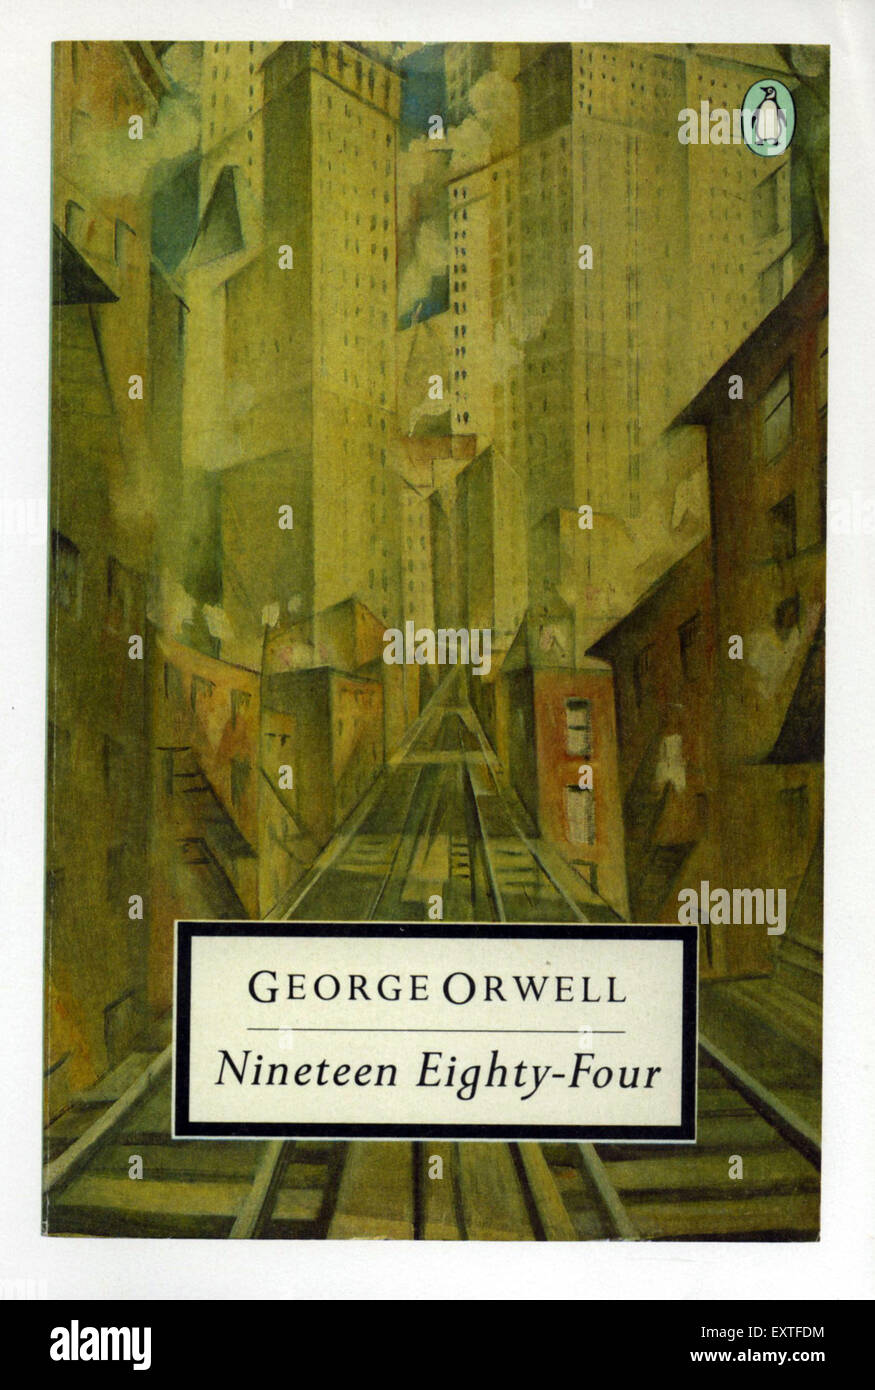 1980s UK Nineteen Eighty-Four Book Cover - Stock Image